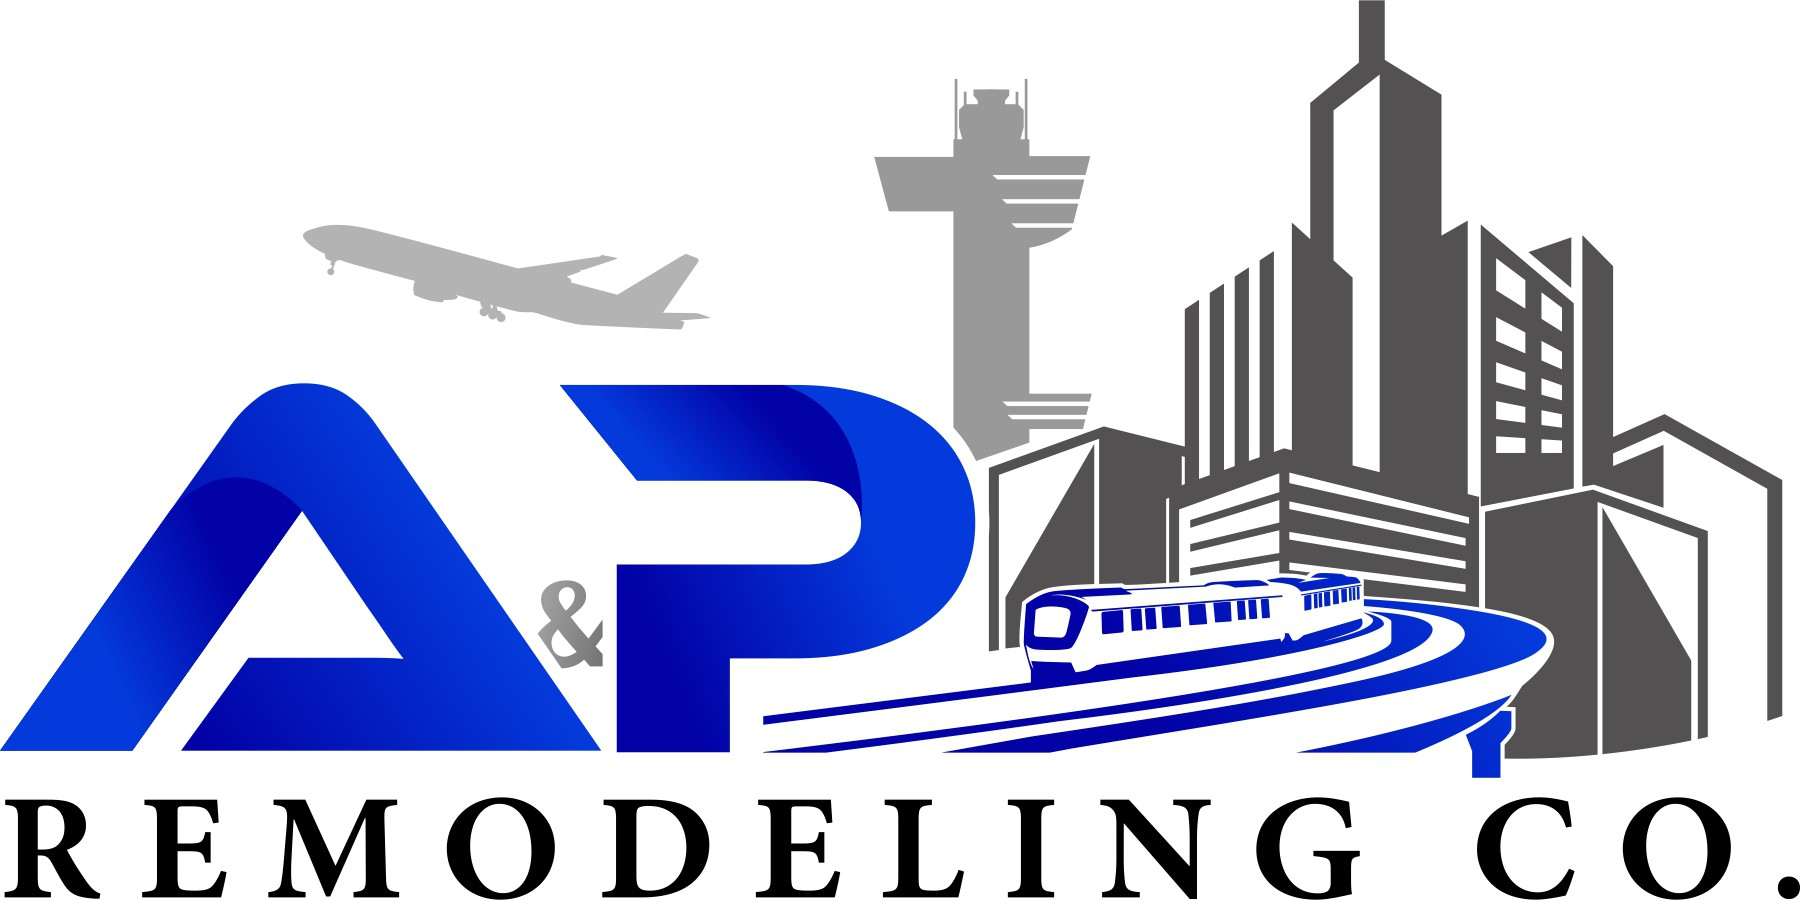 LOGO - for A&P Remodeling Co. & A&P Contracting Group